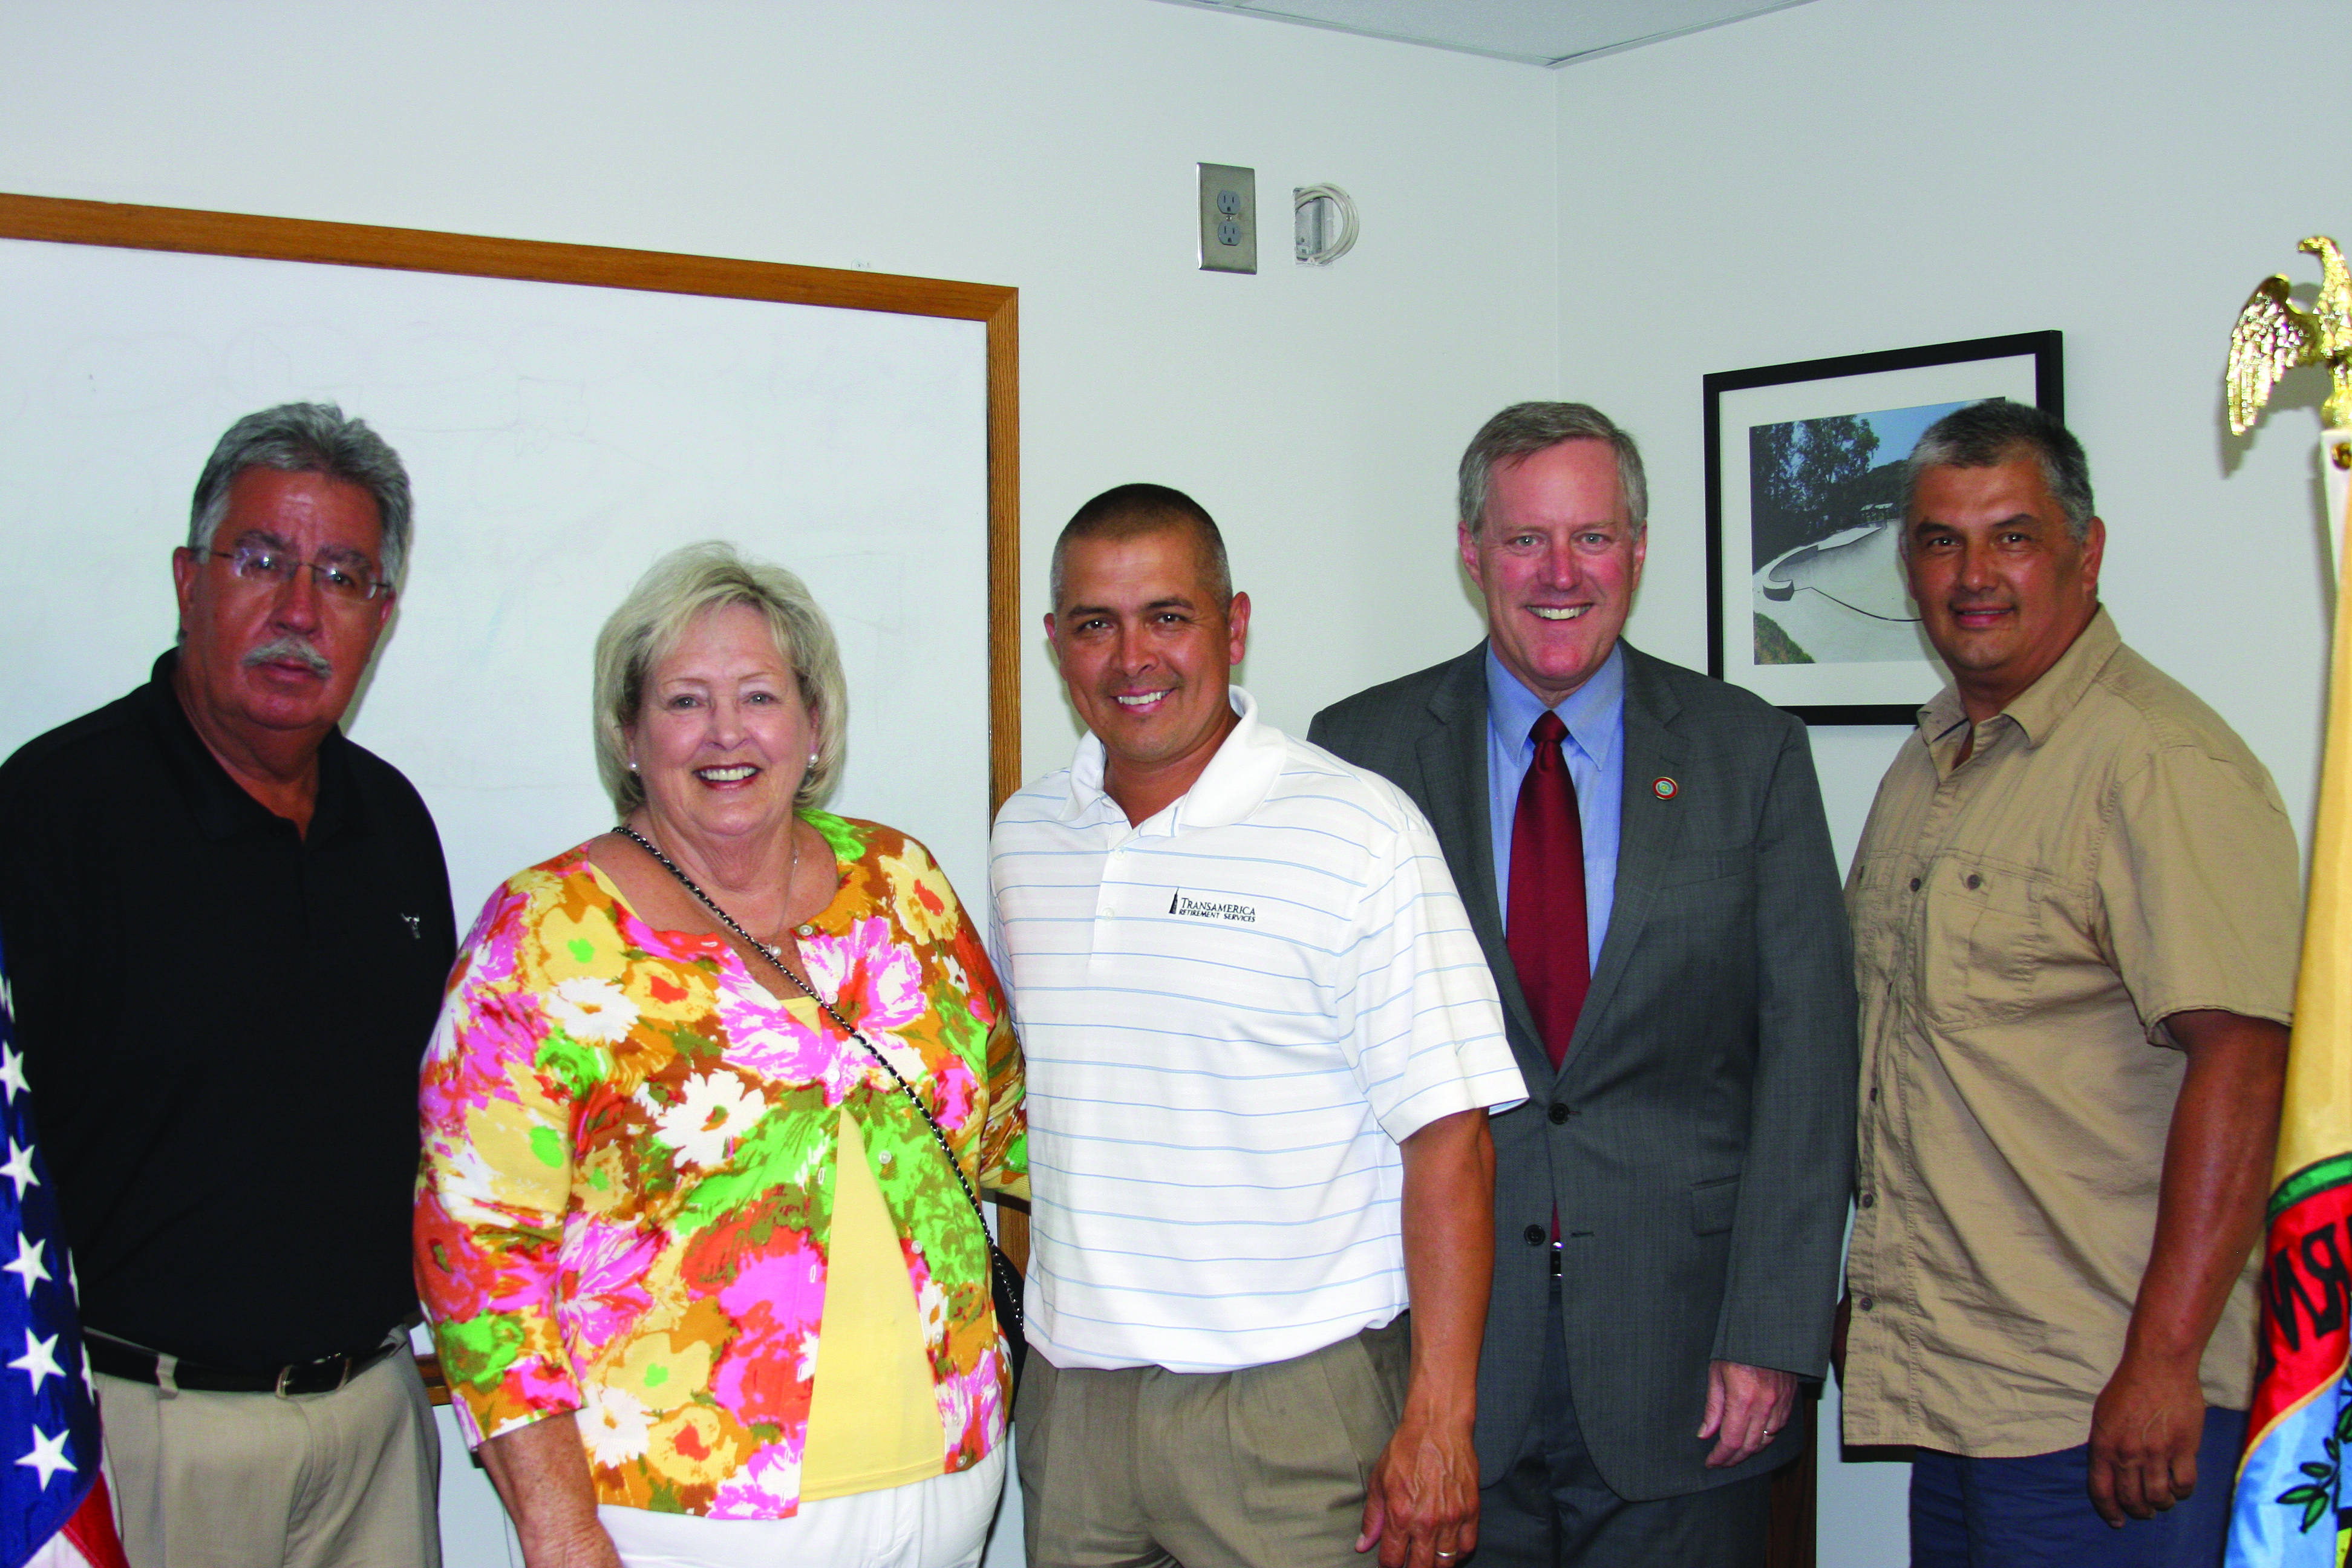 Congressman Mark Meadows (R-NC), shown 2nd from right, opened what is believed to the first Congressional office on an Indian Reservation in Cherokee on Tuesday, May 28.  Rep. Meadows was on hand to speak with EBCI tribal members, employees and leaders at Tuesday's event.  Shown (left-right) are Vice Chief Larry Blythe, Painttown Rep. Tommye Saunooke, Principal Chief Michell Hicks, Rep. Meadows and Yellowill Rep. B. Ensley.  (LYNNE HARLAN/EBCI Public Relations)